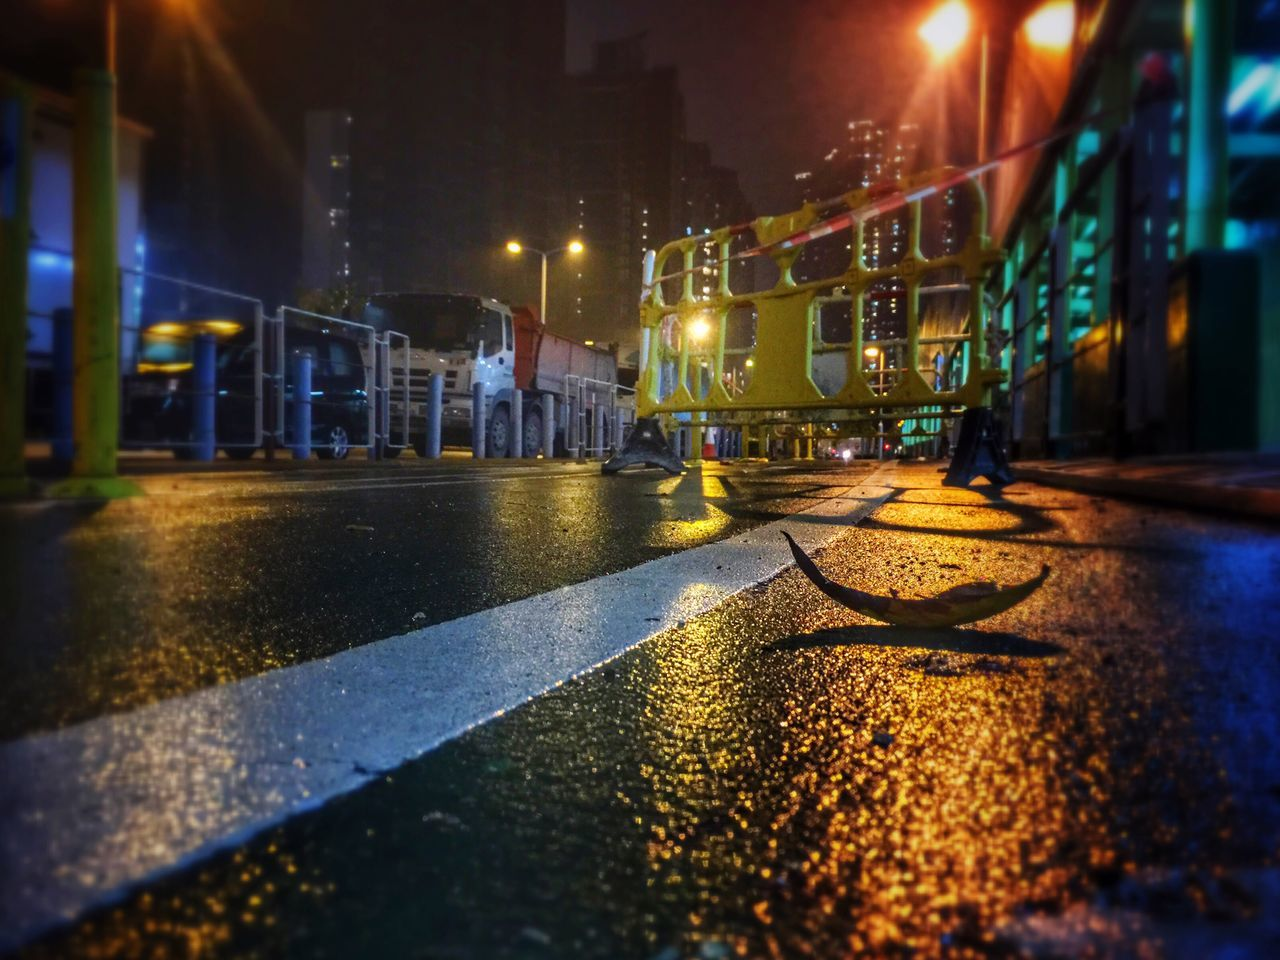 Streetphotography Street Light And Shadows Light Road Sign Road Light In The Darkness Light And Shadow Reflections Reflection Night Lights City Night Lights Night City How Do We Build The World? Leaf Leaf 🍂 Rain Rainy Day